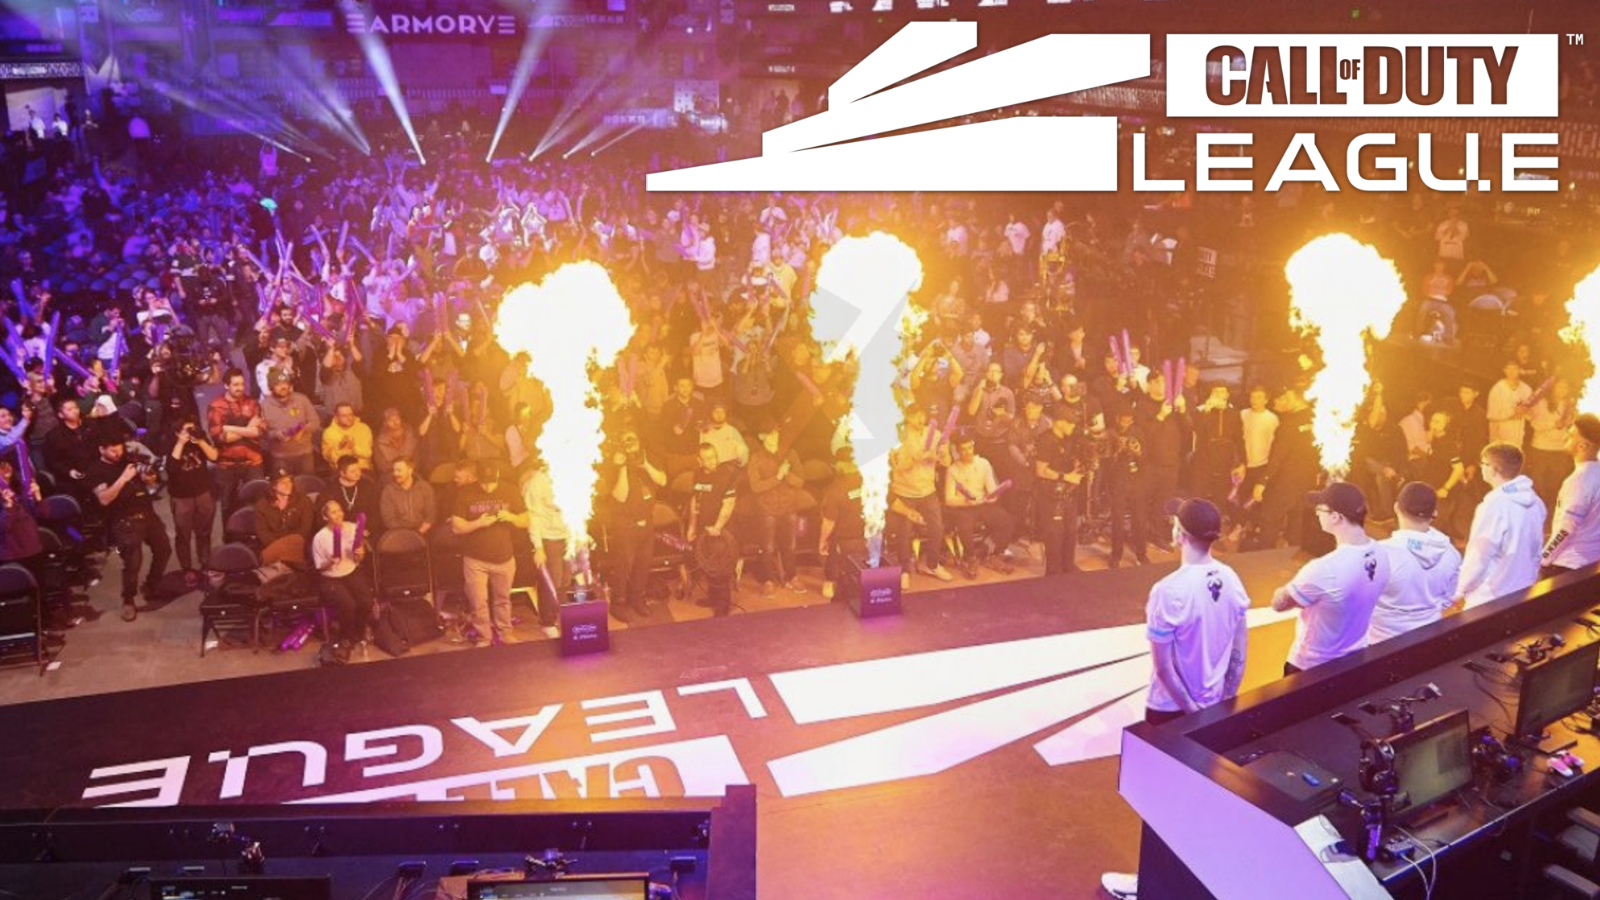 CDL Event crowd